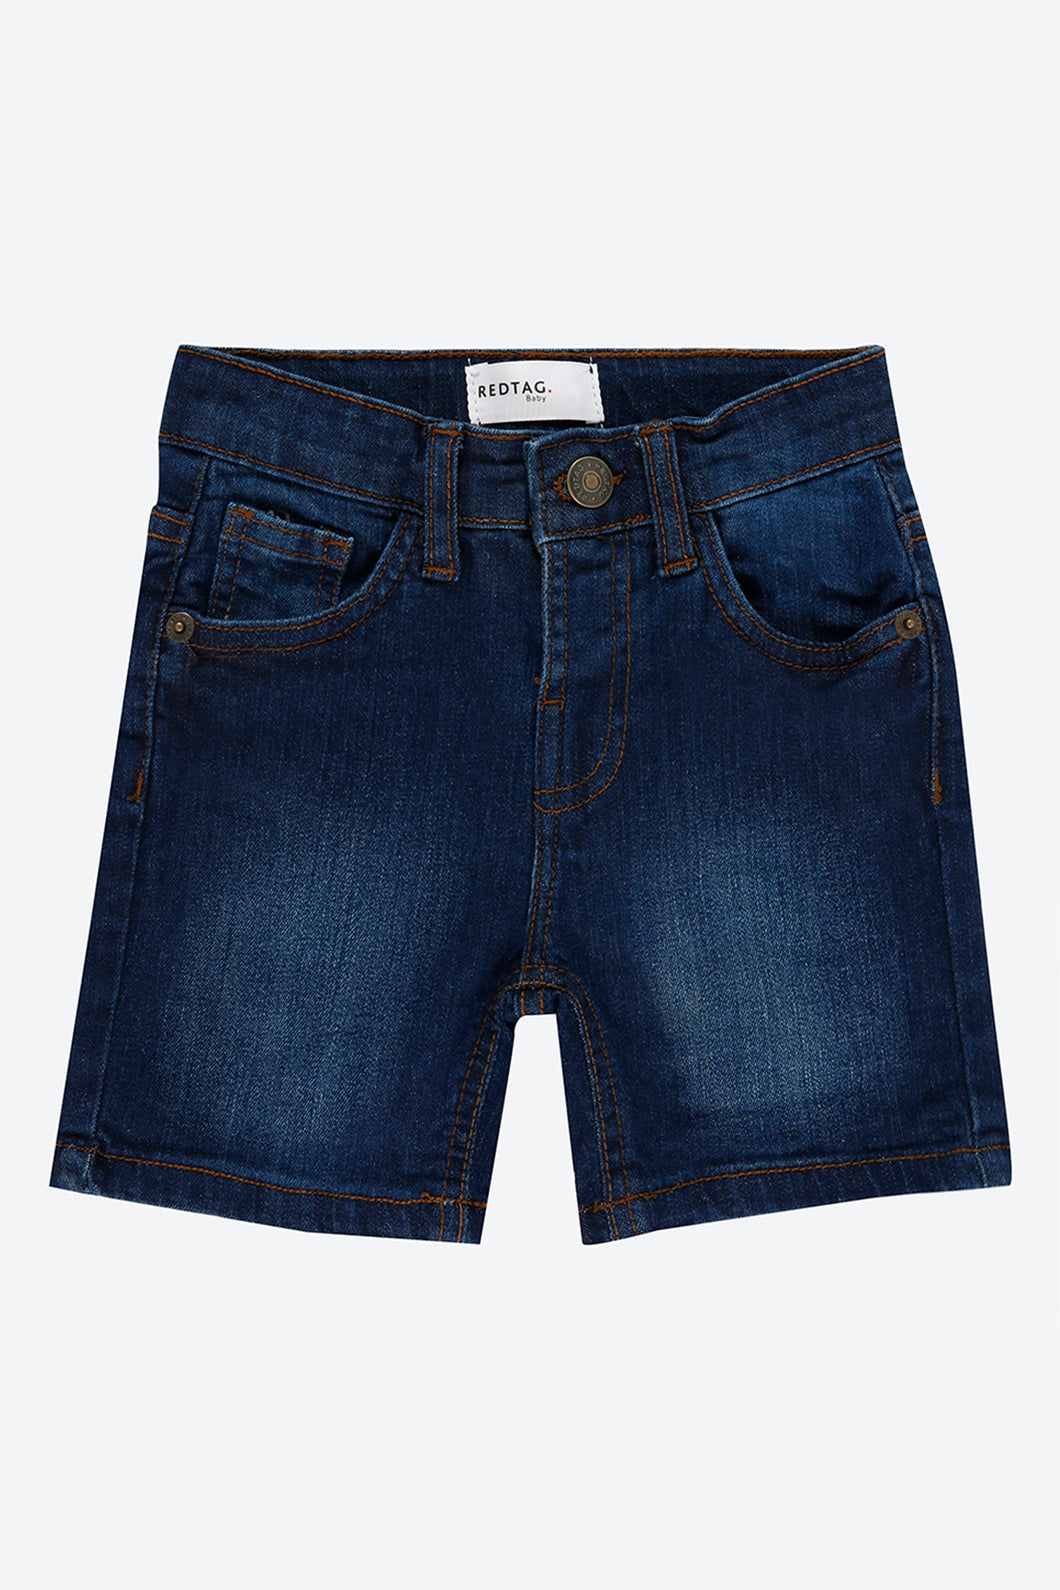 Dark Wash Denim Short